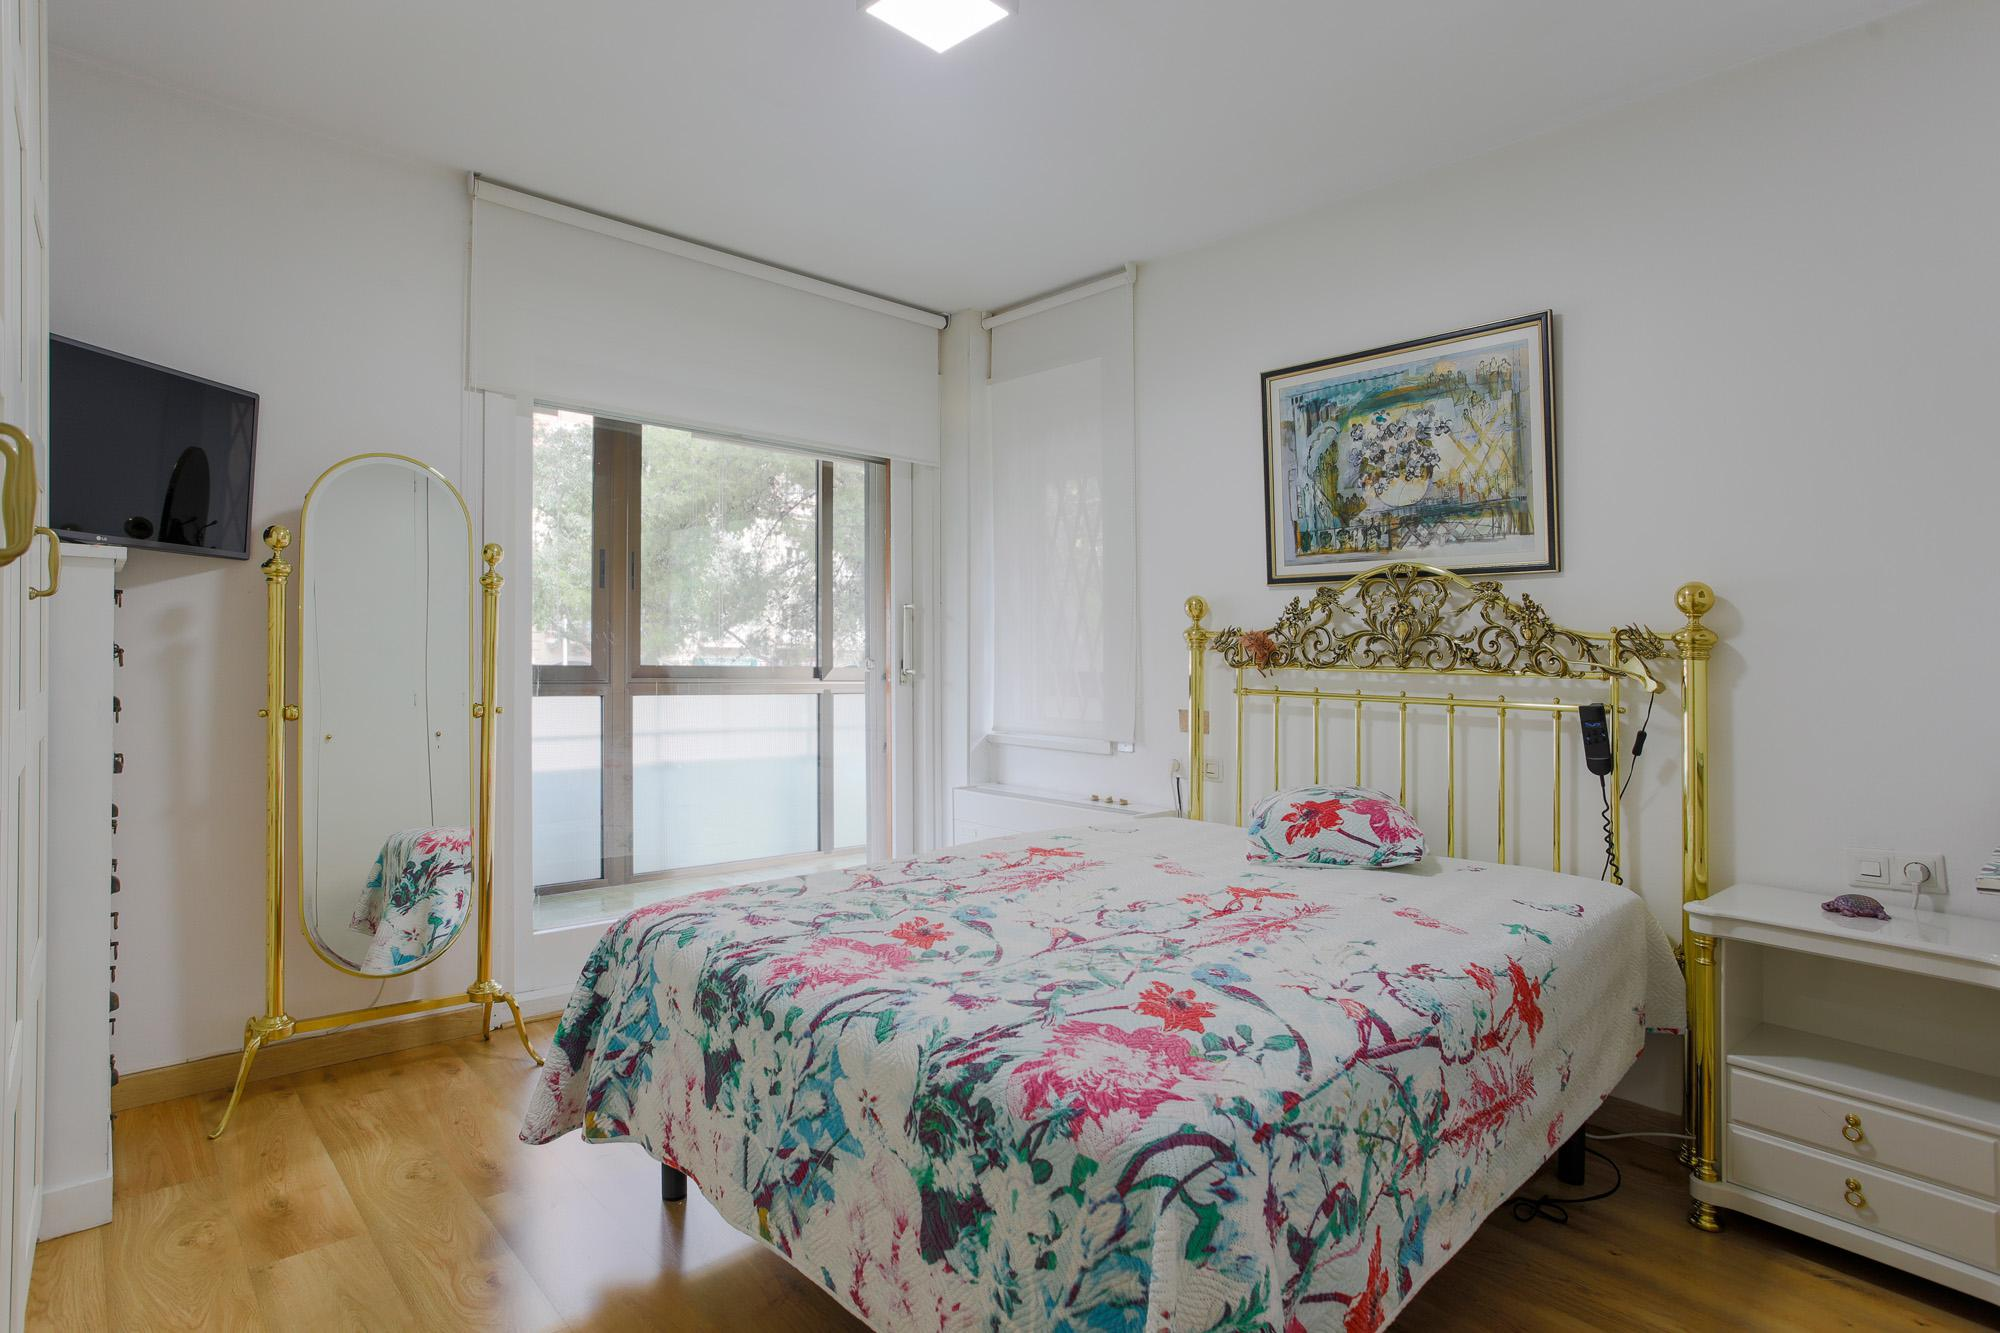 232863 Apartment for sale in Les Corts, Pedralbes 23